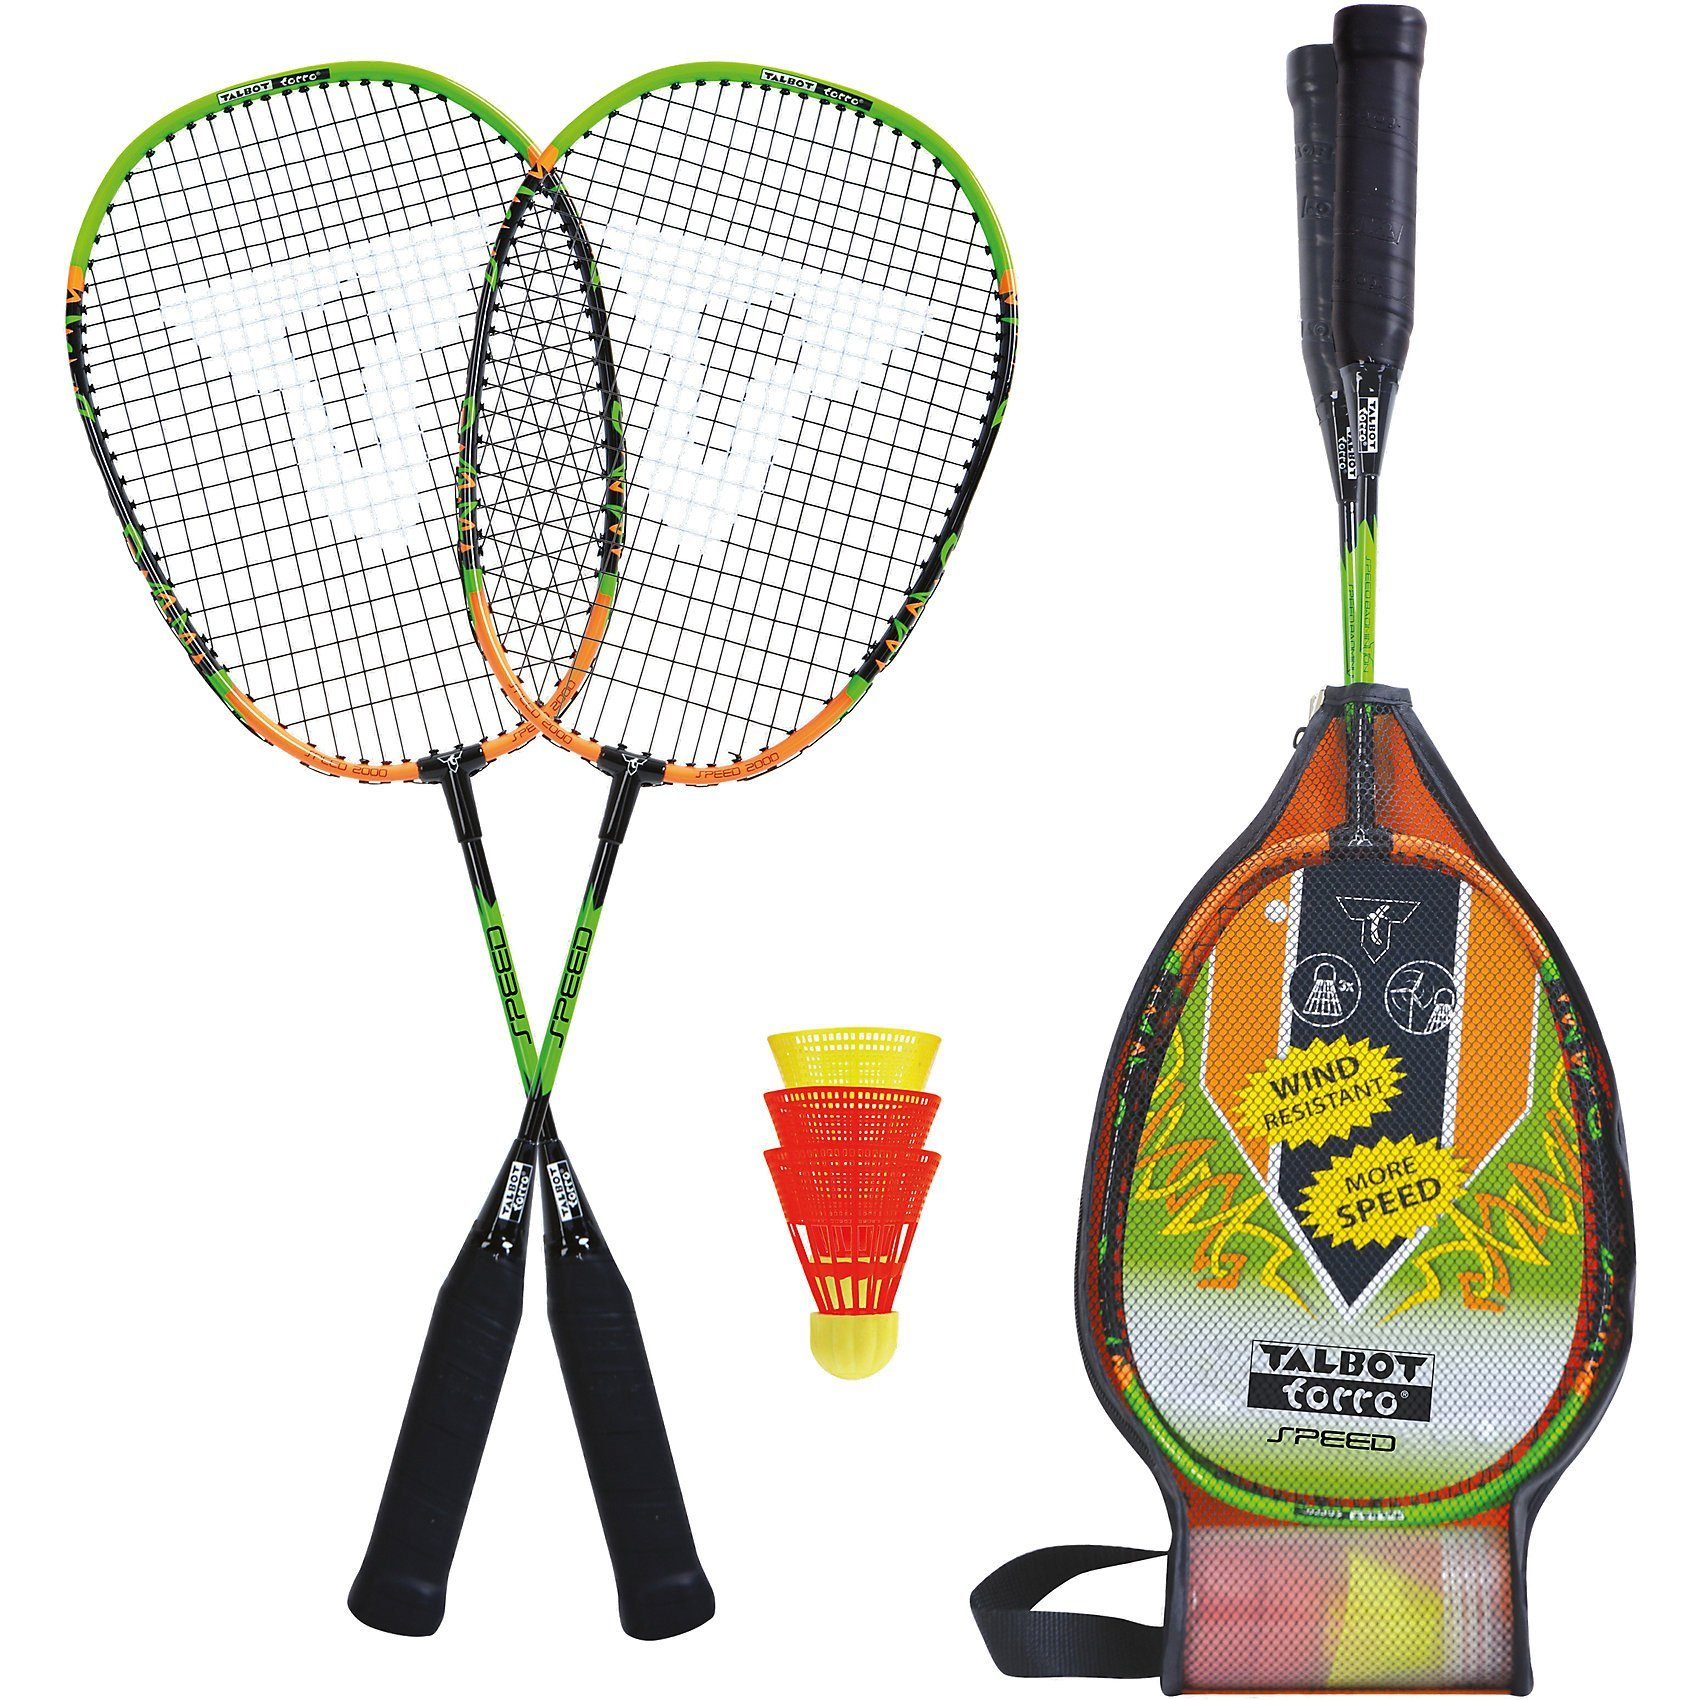 Talbot-Torro Badminton Set Speed 2000